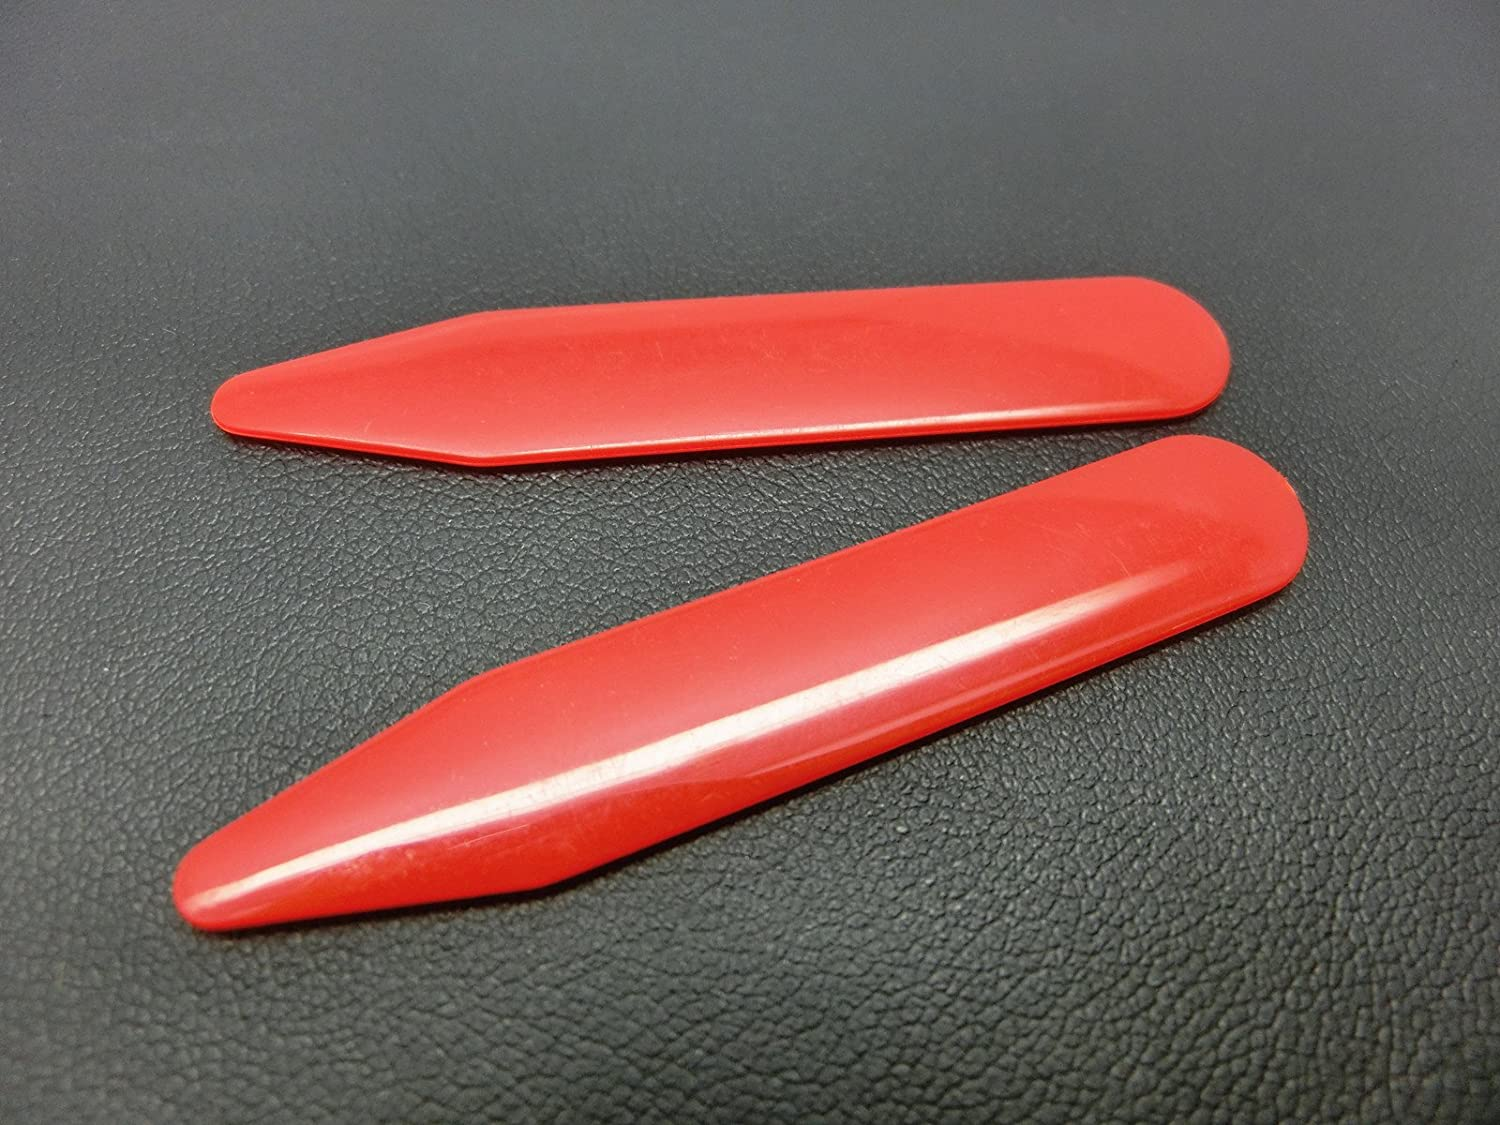 2.2 Shang Zun 30 Pcs Red Plastic Collar Stays in Clear Box